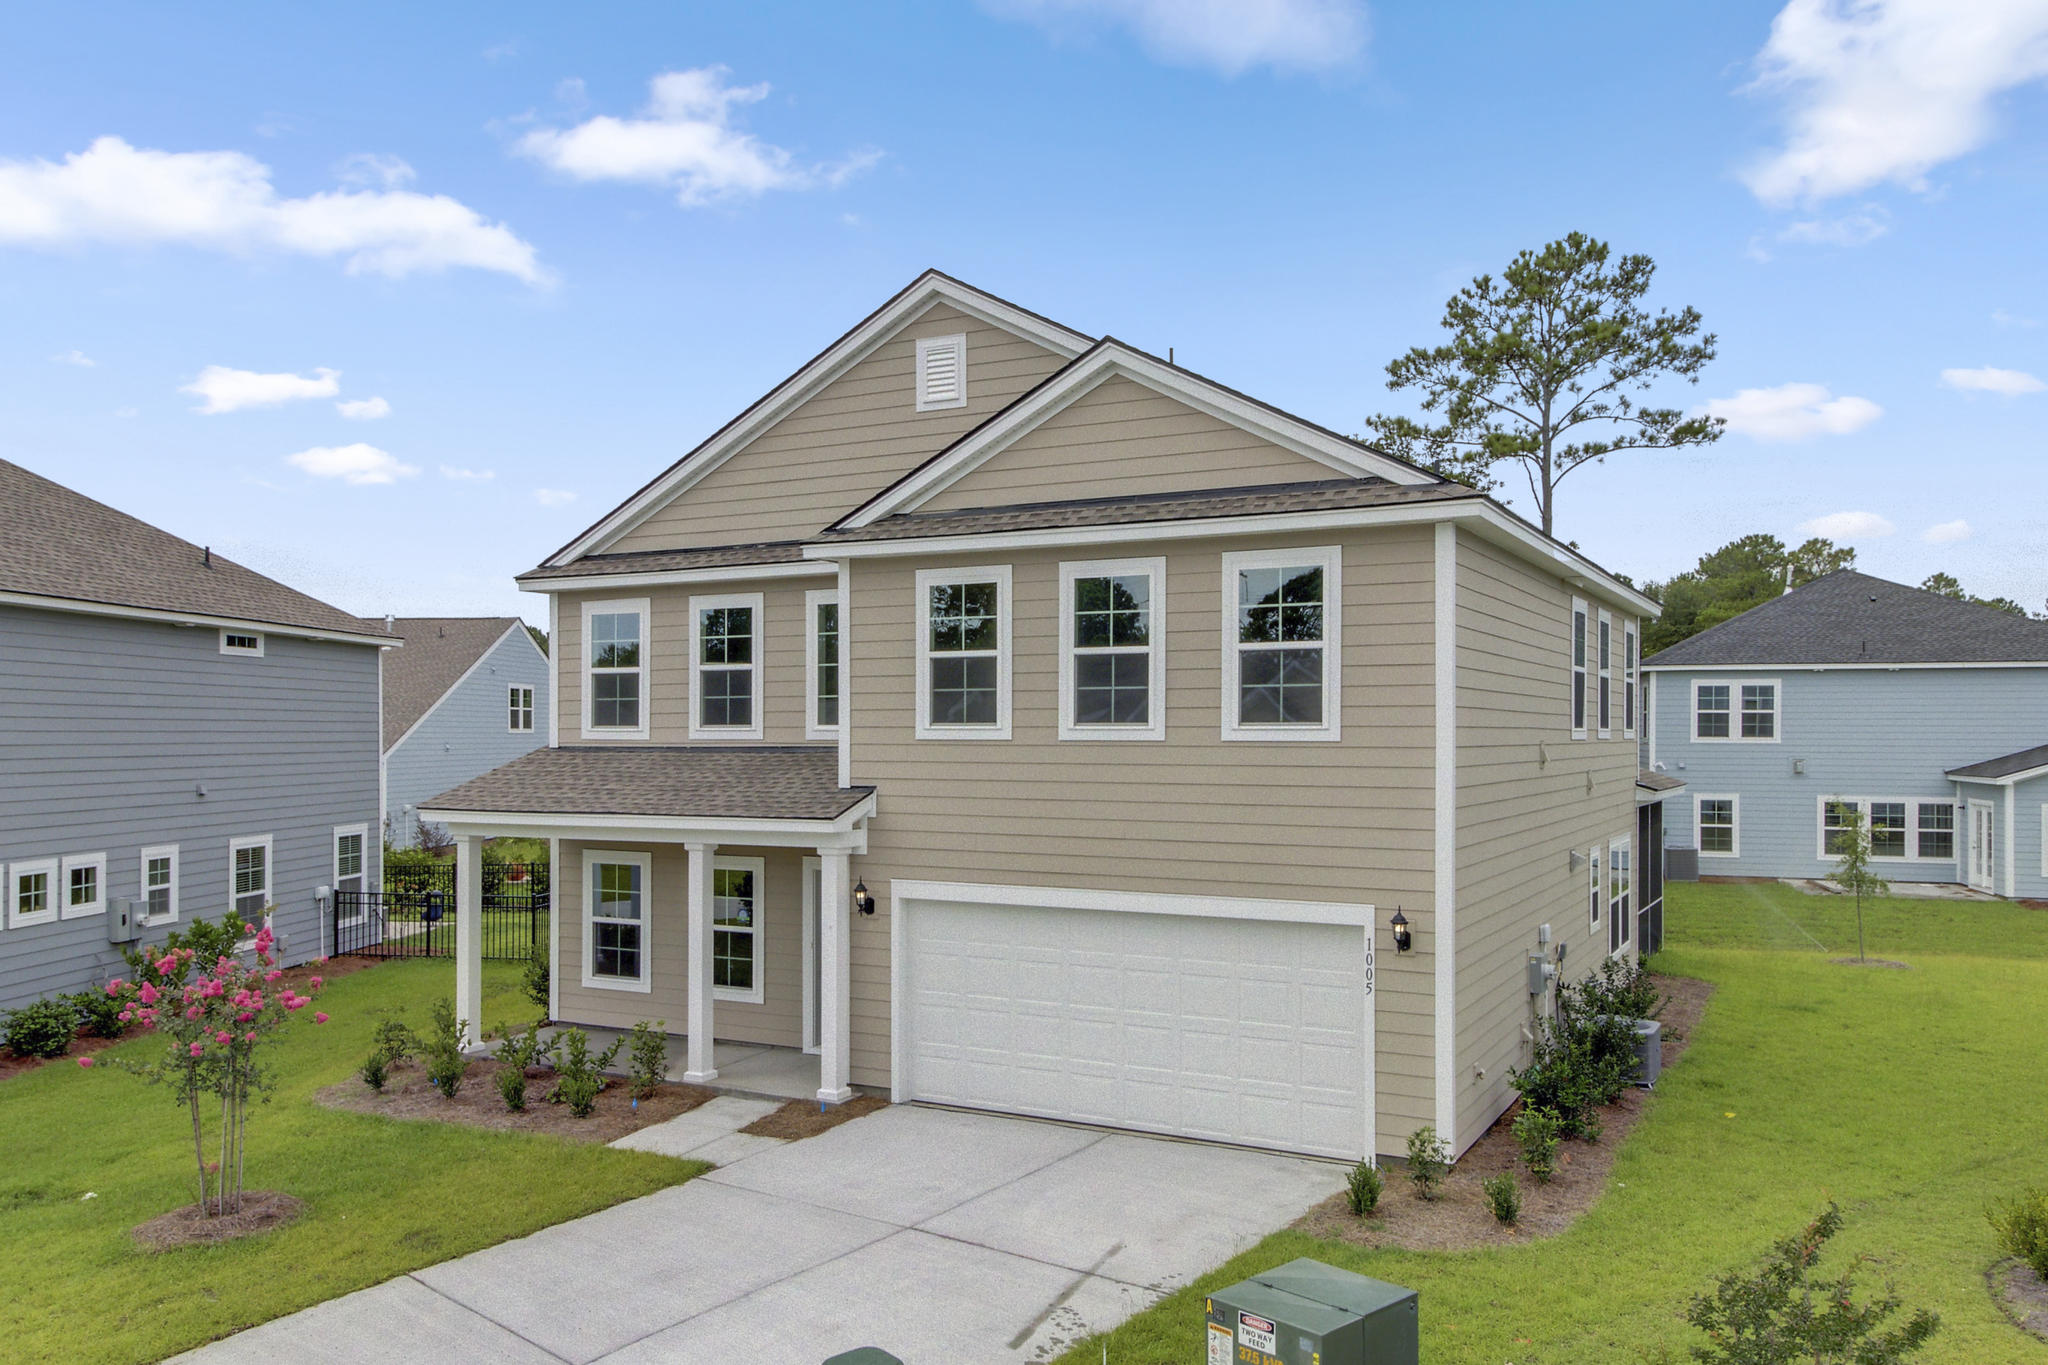 St. Johns Lake Homes For Sale - 1005 Pigeon, Johns Island, SC - 27